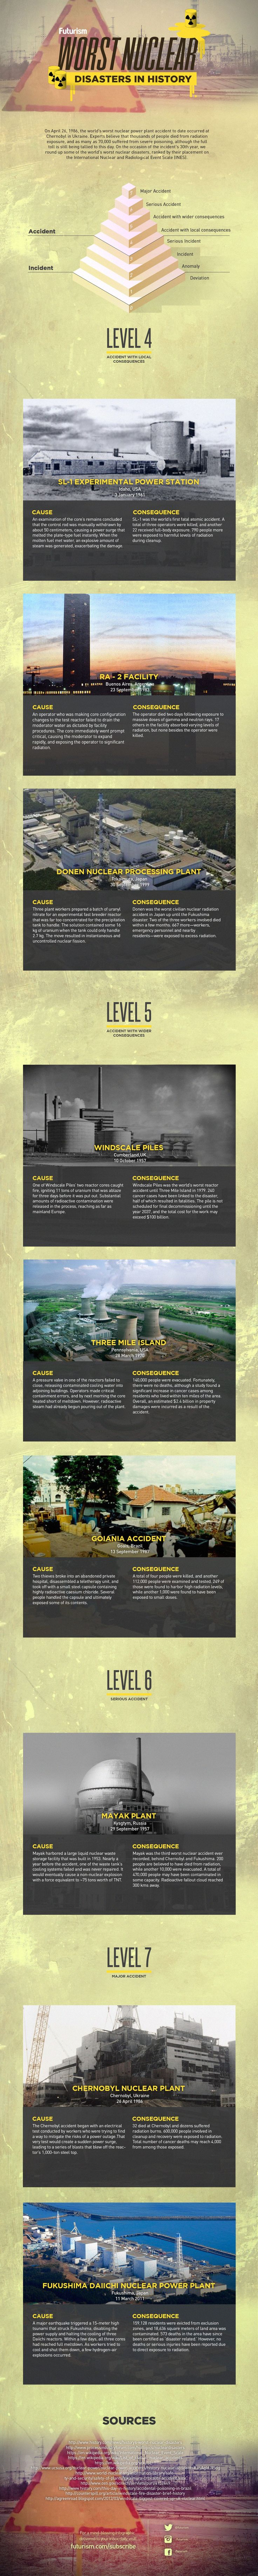 These Are The Worst Nuclear Disasters in History (Infographic) — The Chernobyl nuclear disaster happened 30 years ago. Over 300,000 had to be evacuated. 3 million were affected. And it could happen again.  — https://futurism.com/images/these-are-the-worst-nuclear-disasters-in-history-infographic/